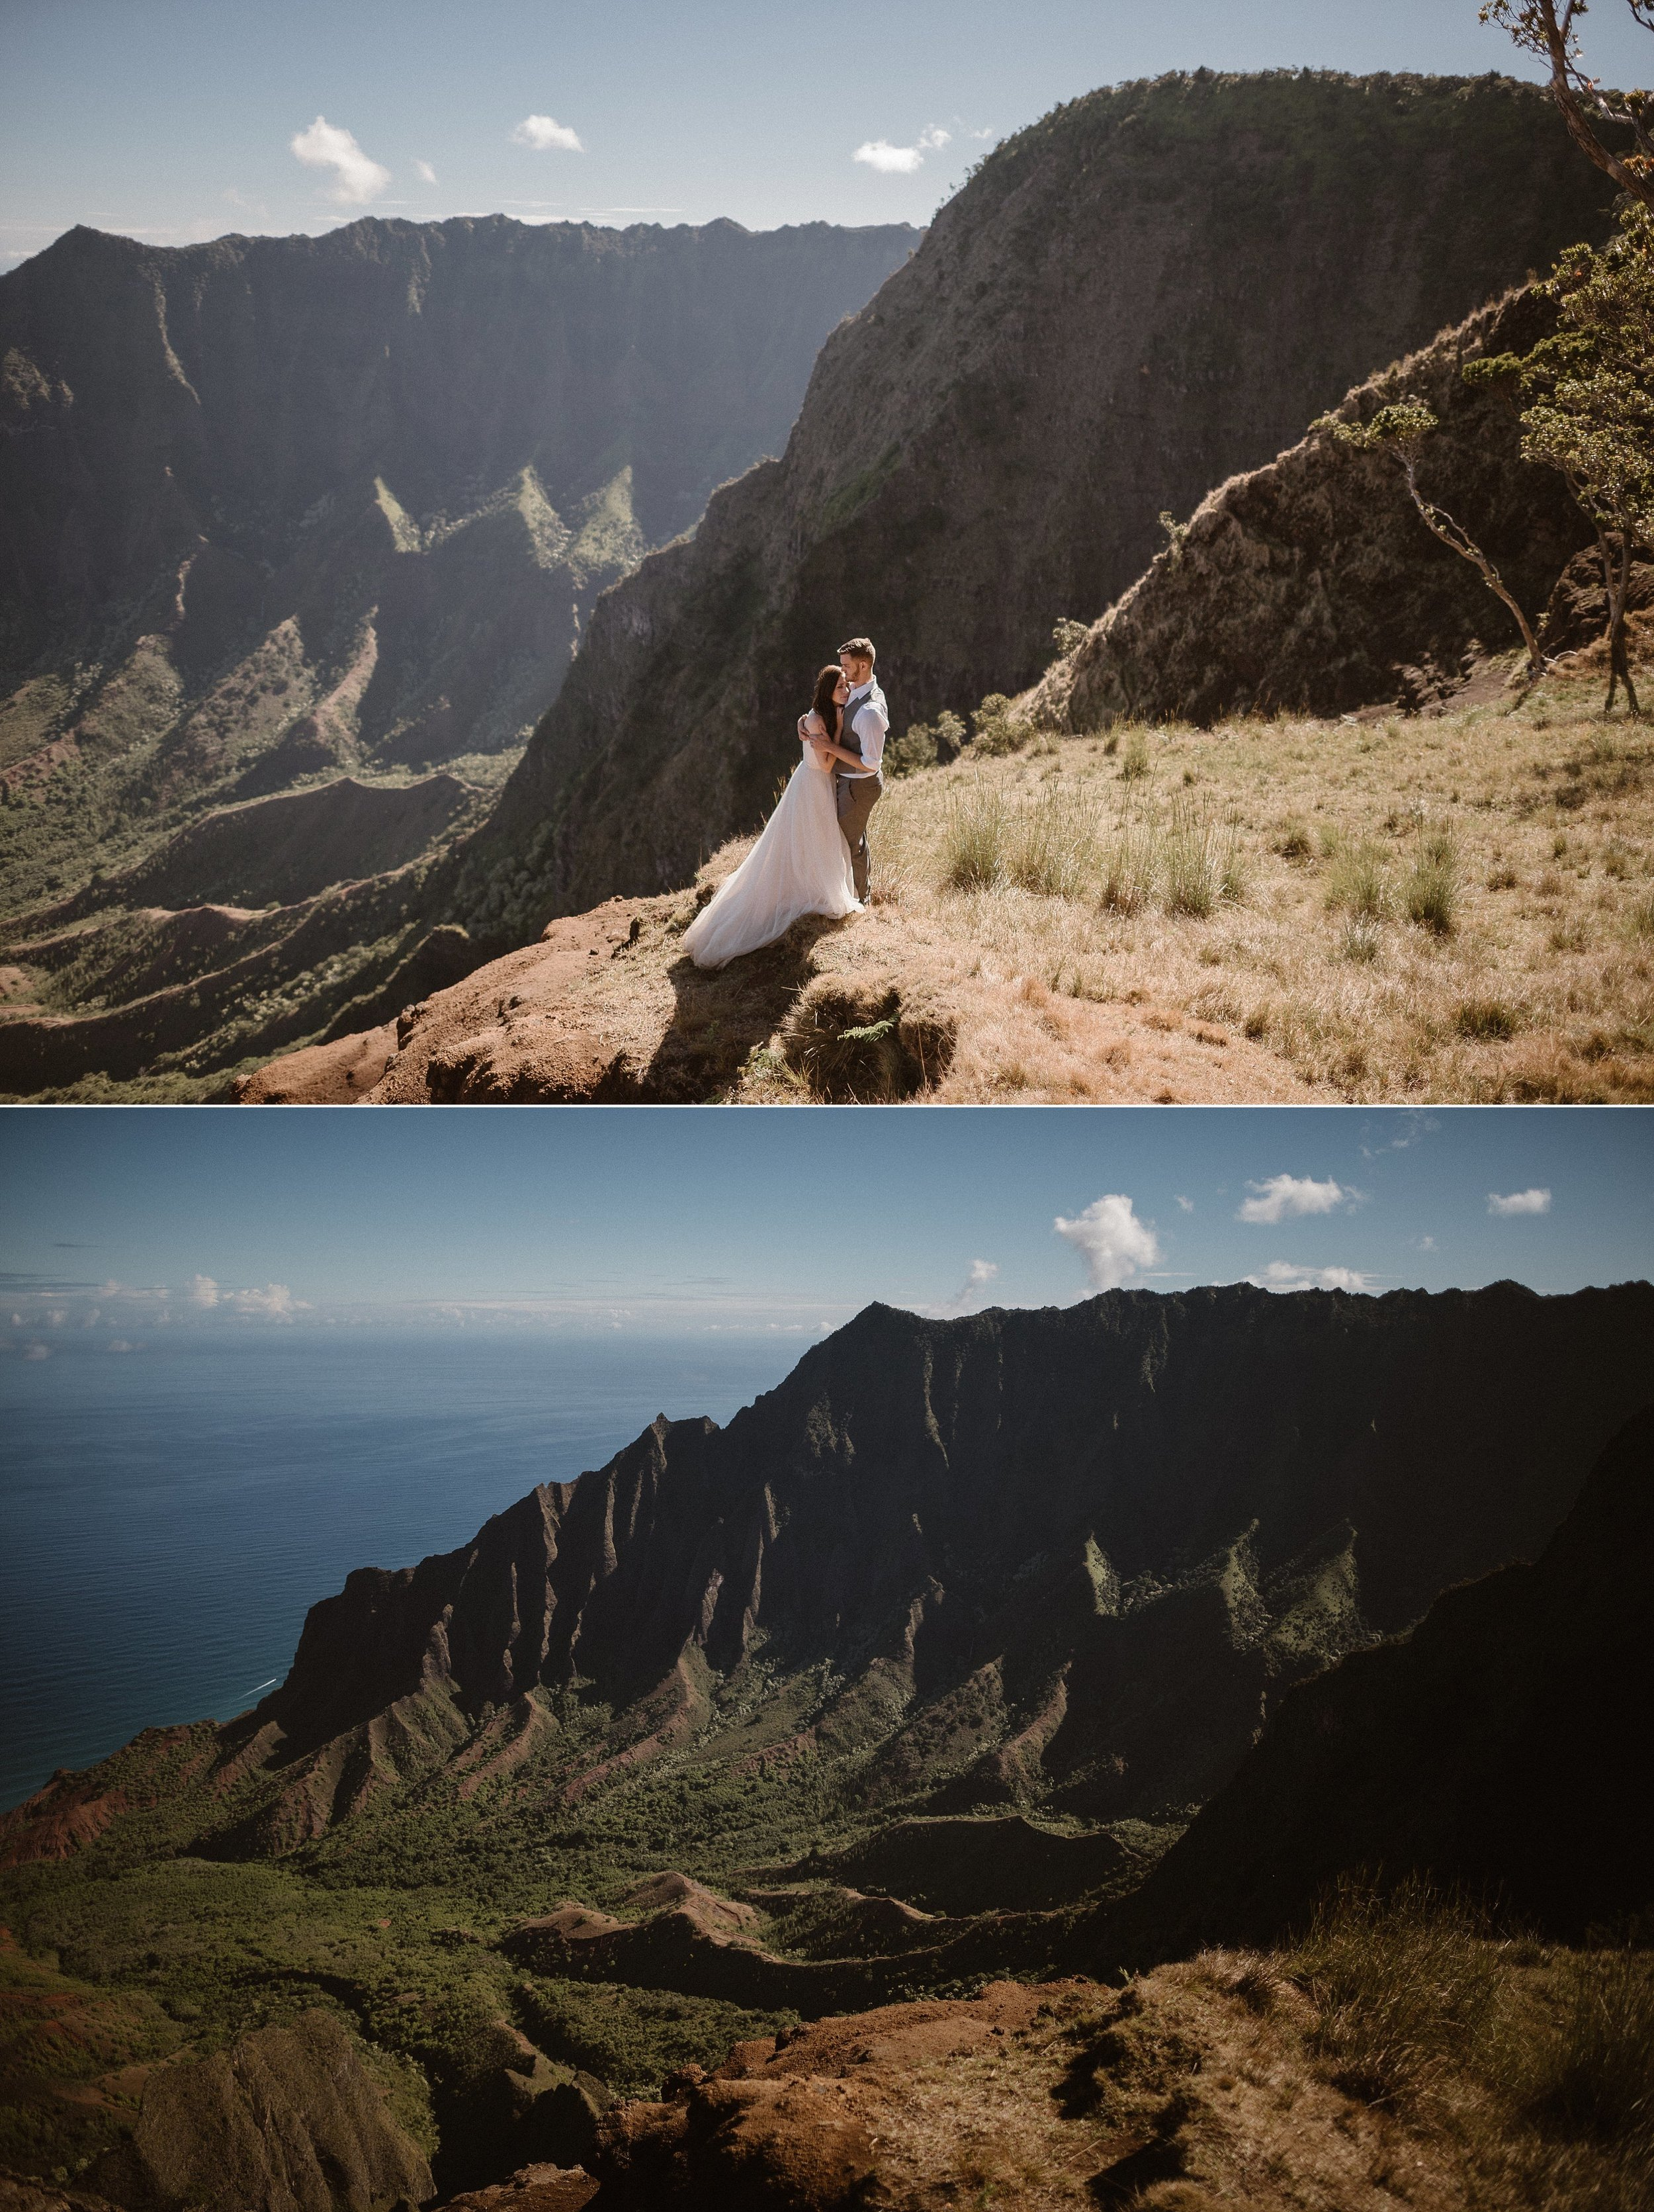 They wandered in and out of the trees to the cliff sides of Kalepa Ridge Trail on their intimate Hawaiian elopement adventure. Kourtney and Chris along with their traveling wedding photographer Maddie Mae, hiked in the warm Kauai sun through Kokee State Park for this romantic elopement.